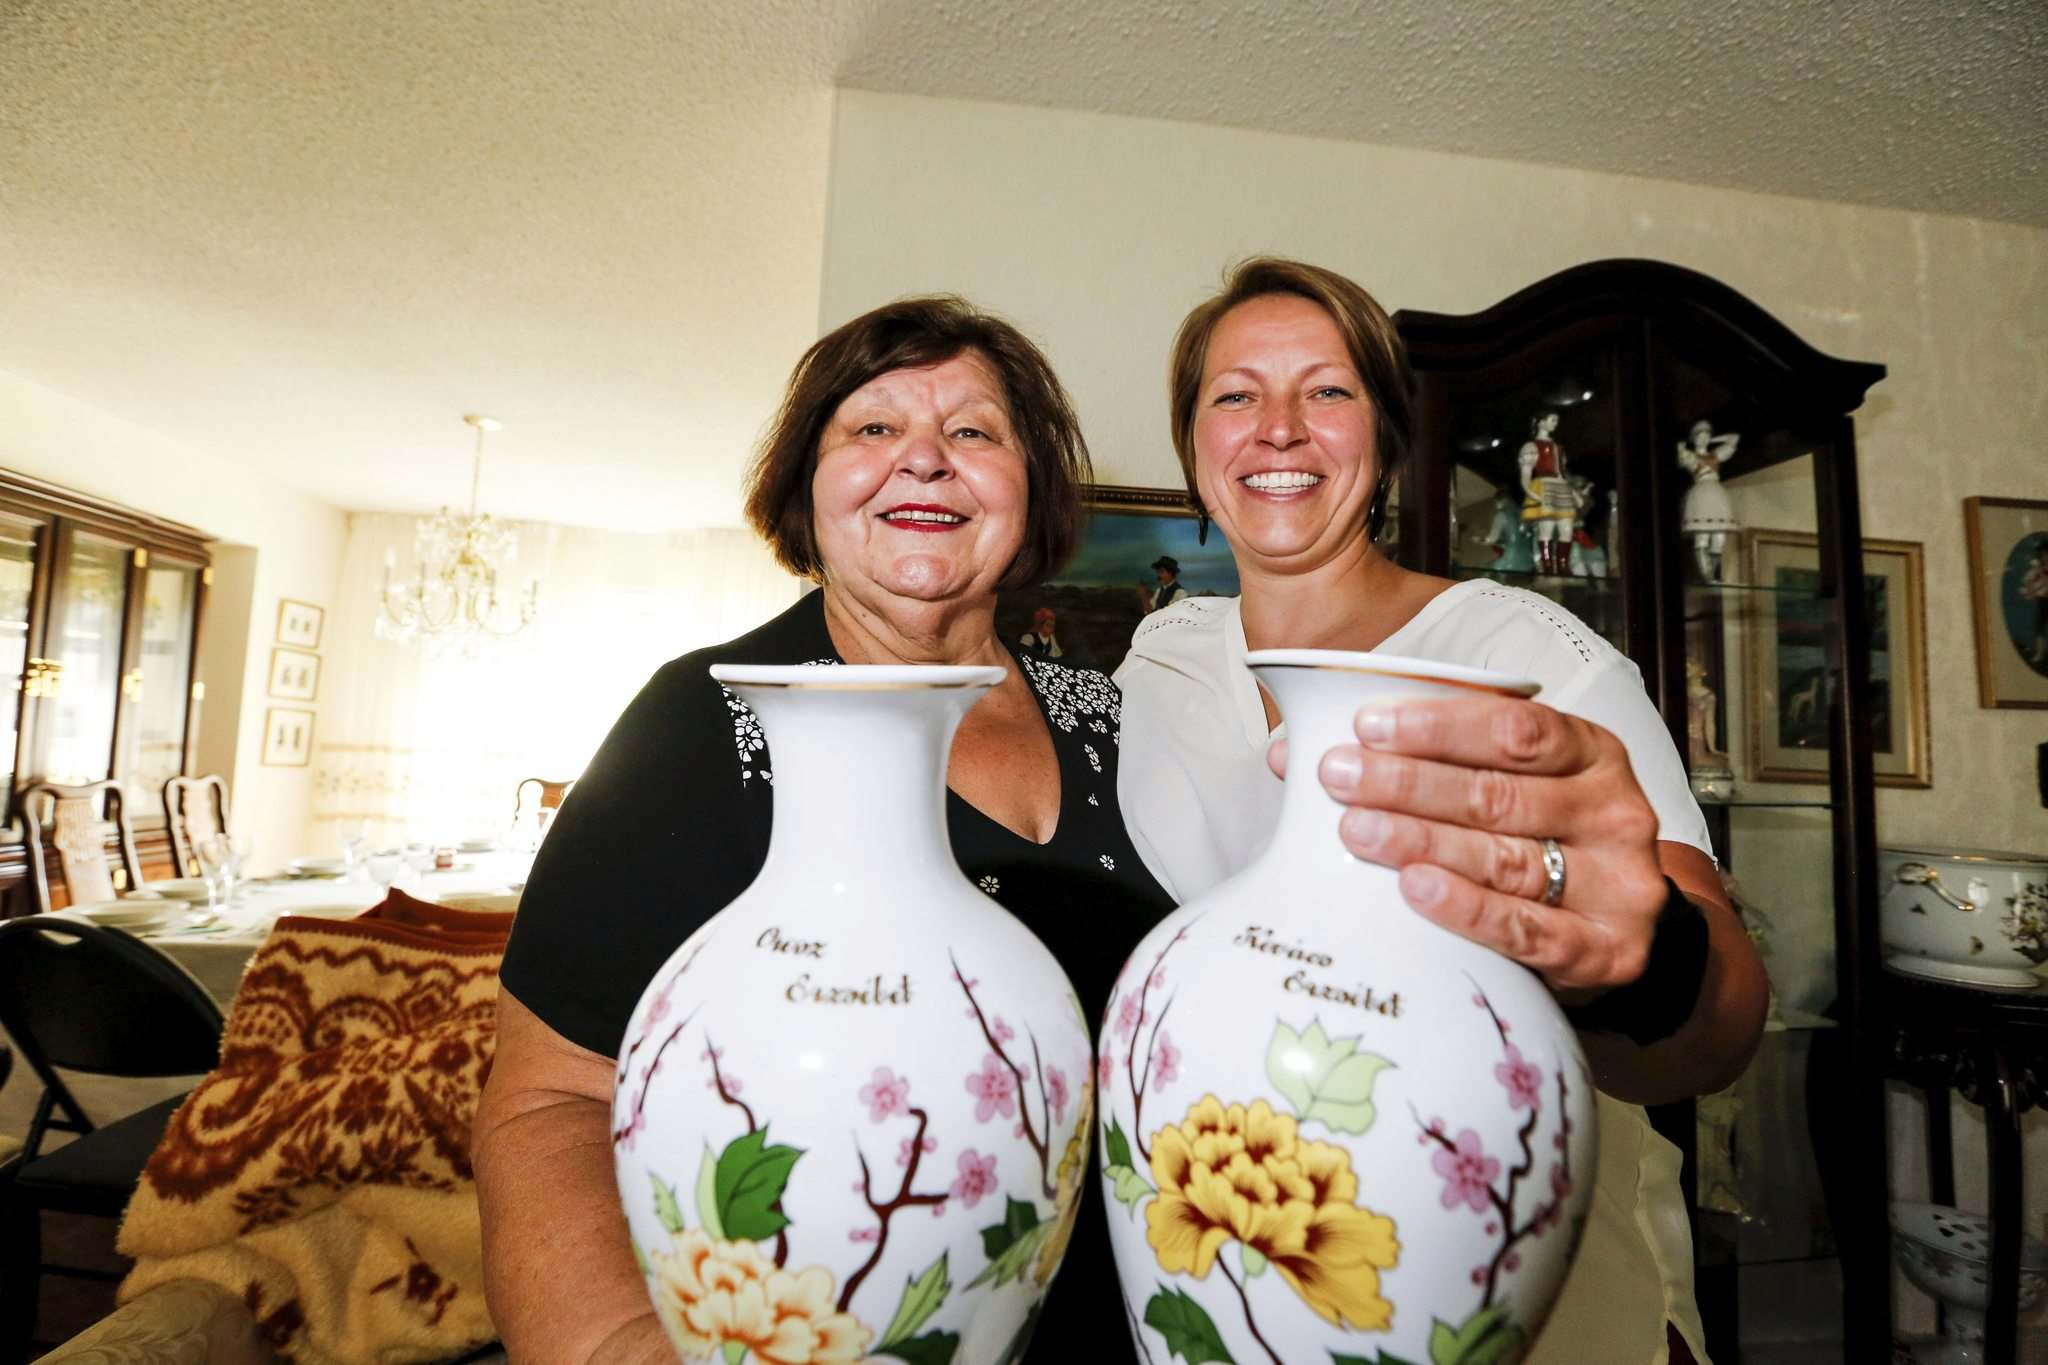 JUSTIN SAMANSKI-LANGILLE / WINNIPEG FREE PRESS</p><p>Liz Kovach and her daughter, Liz Jr. hold a pair of traditional Hungarian Hollohaza porcelain vases.</p>